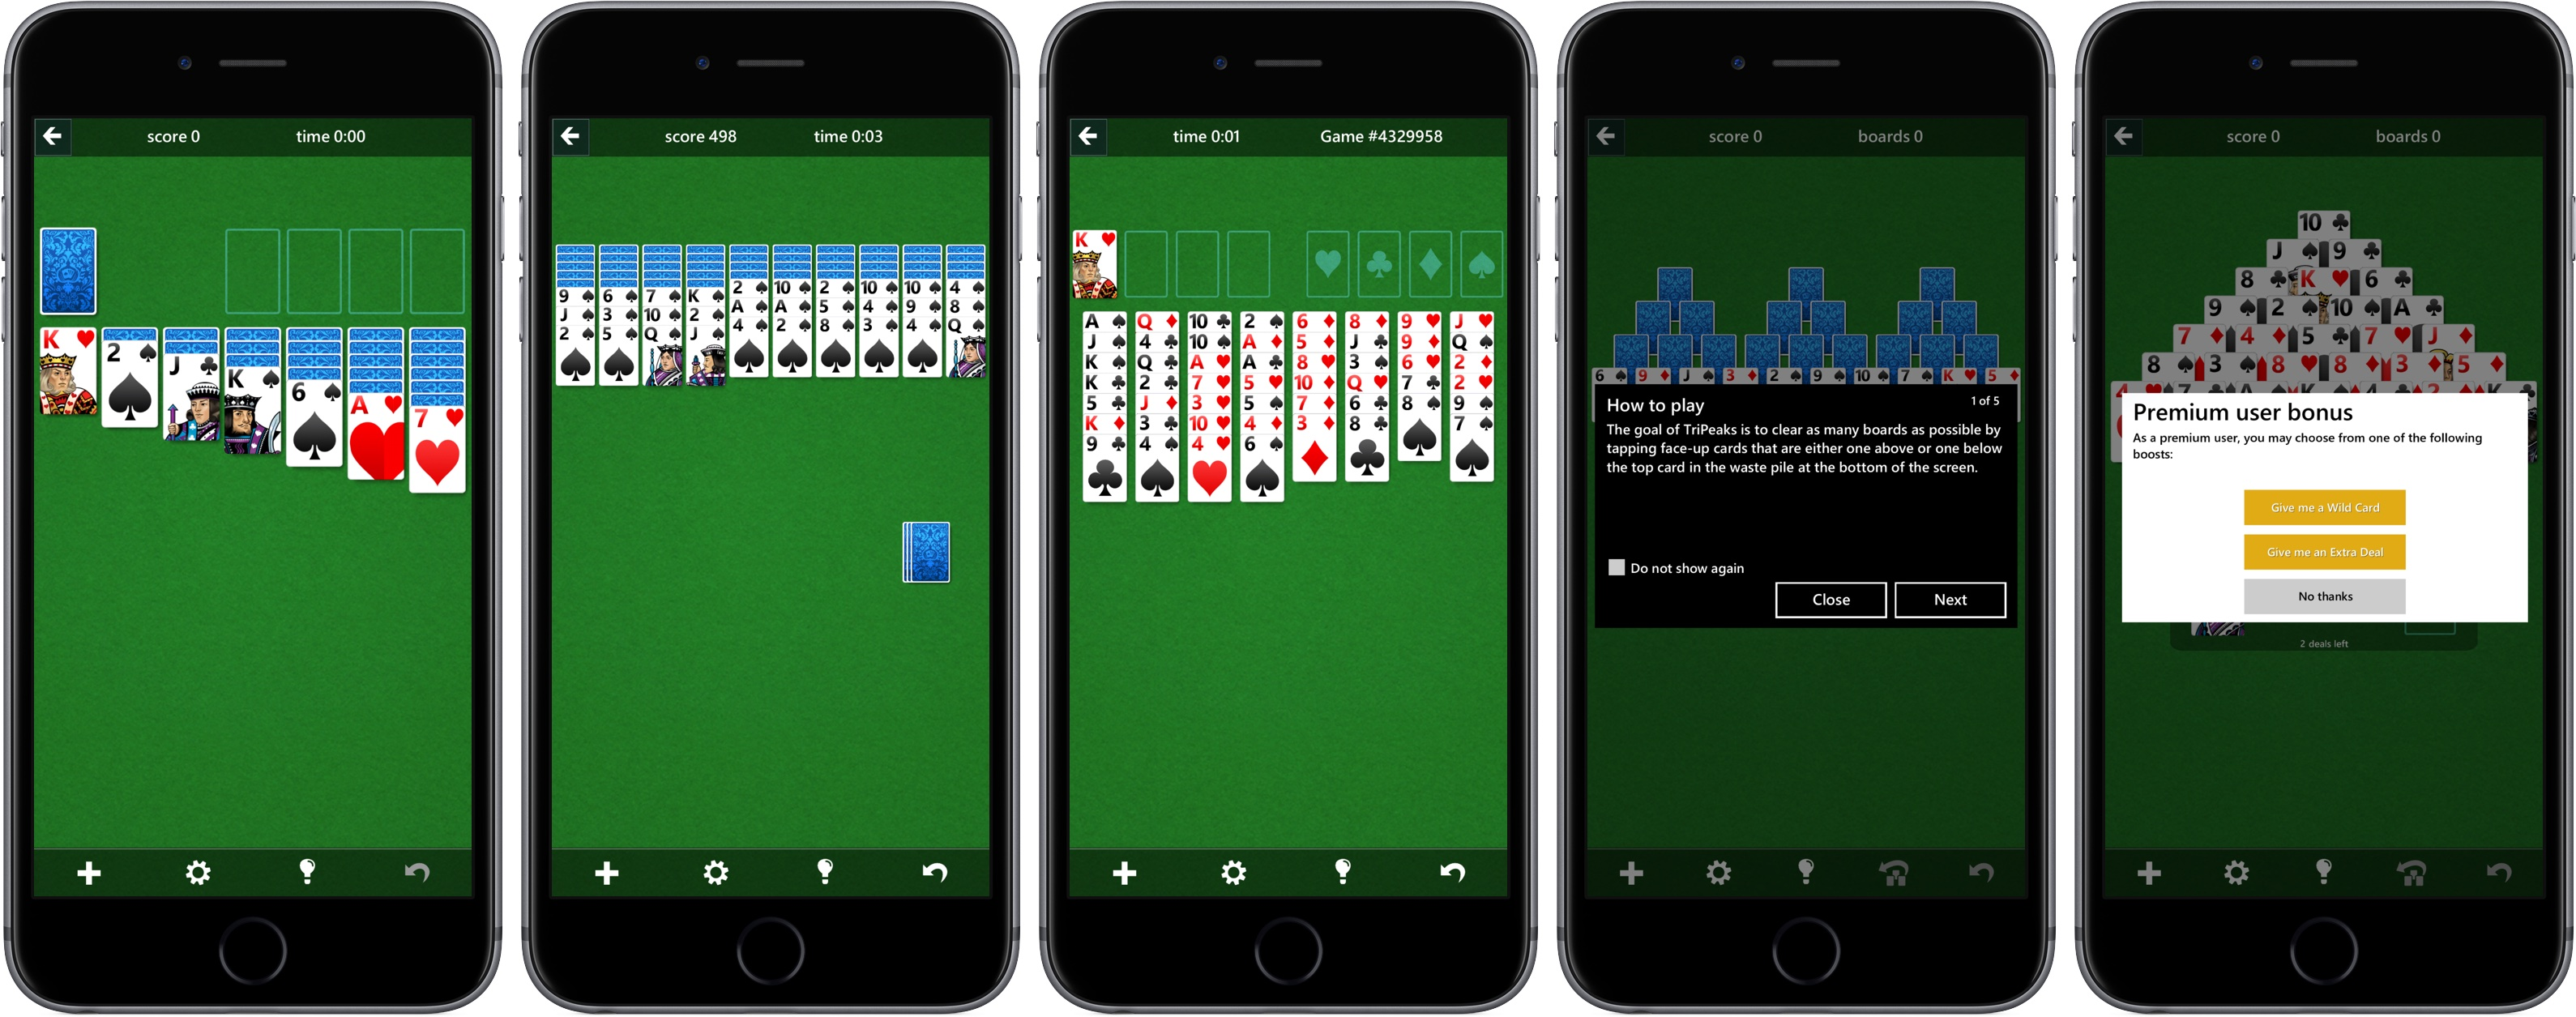 Microsoft Solitaire Collection for iOS iPhone screenshot 001